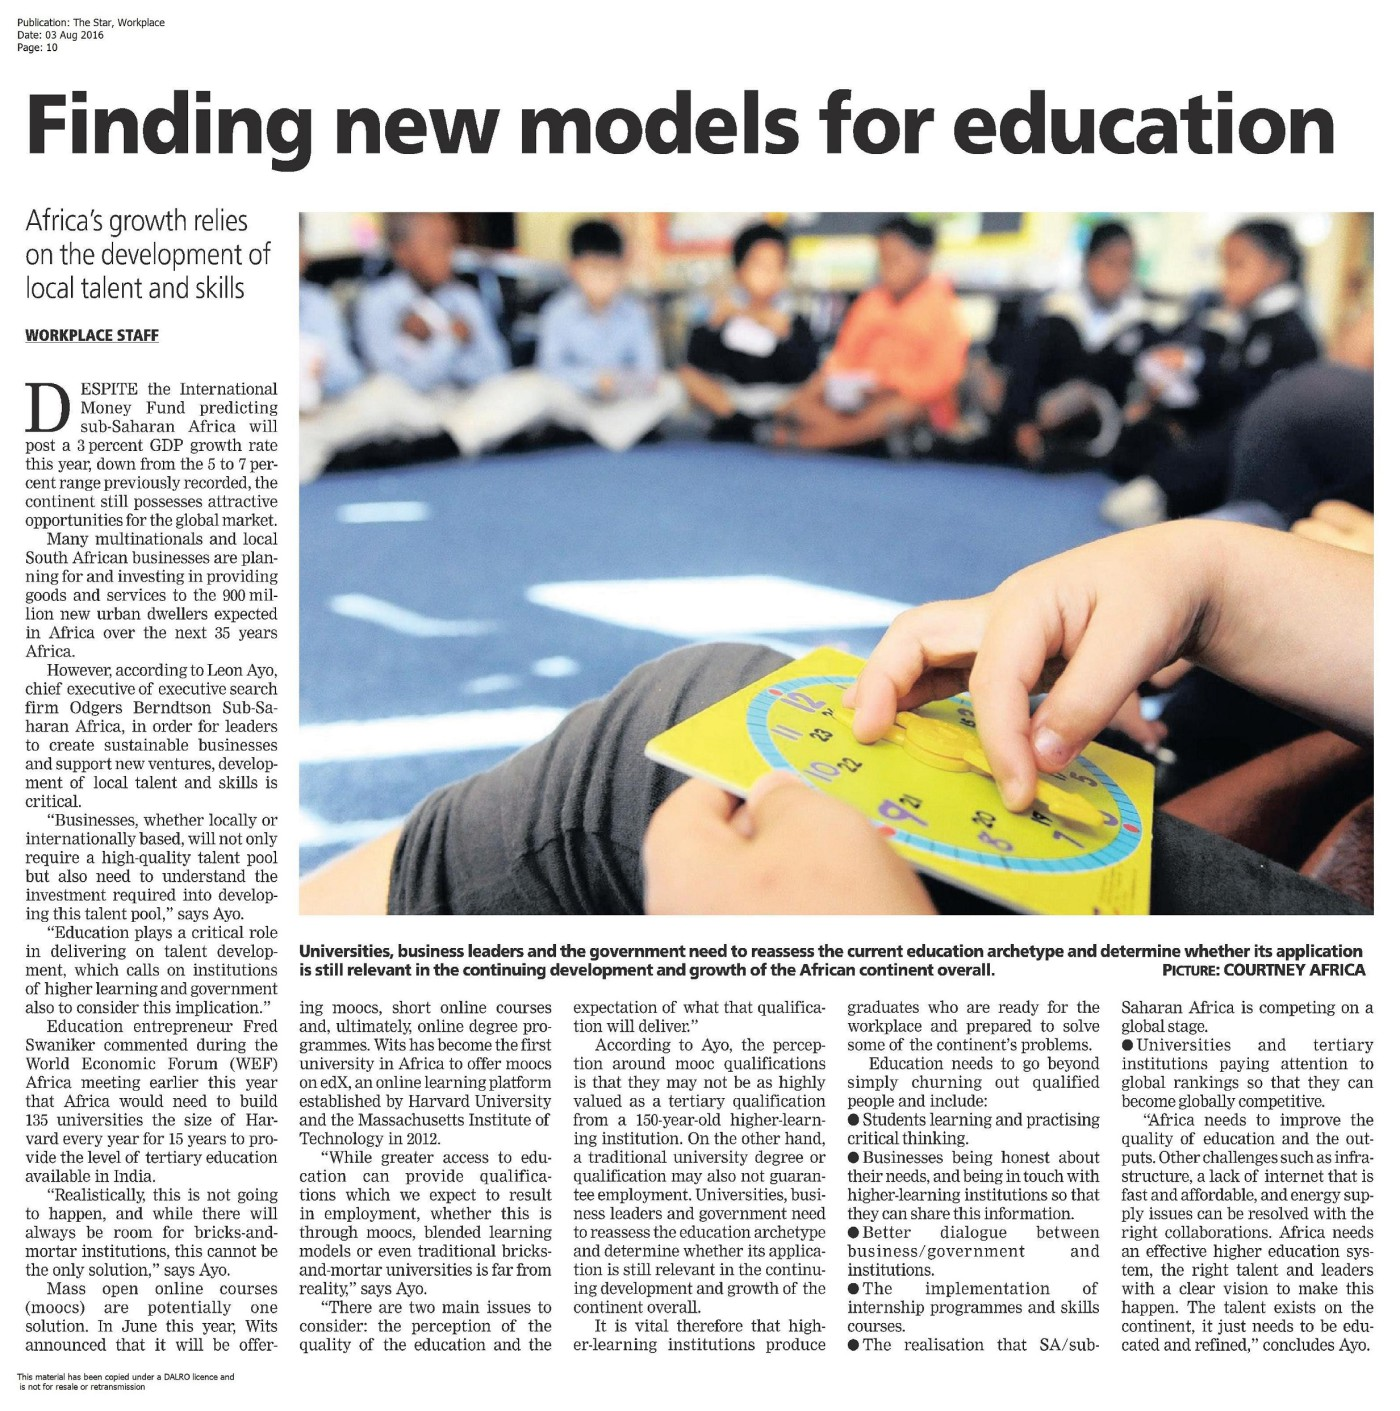 20160803_The Star, Workplace; Finding new models for education-page-001